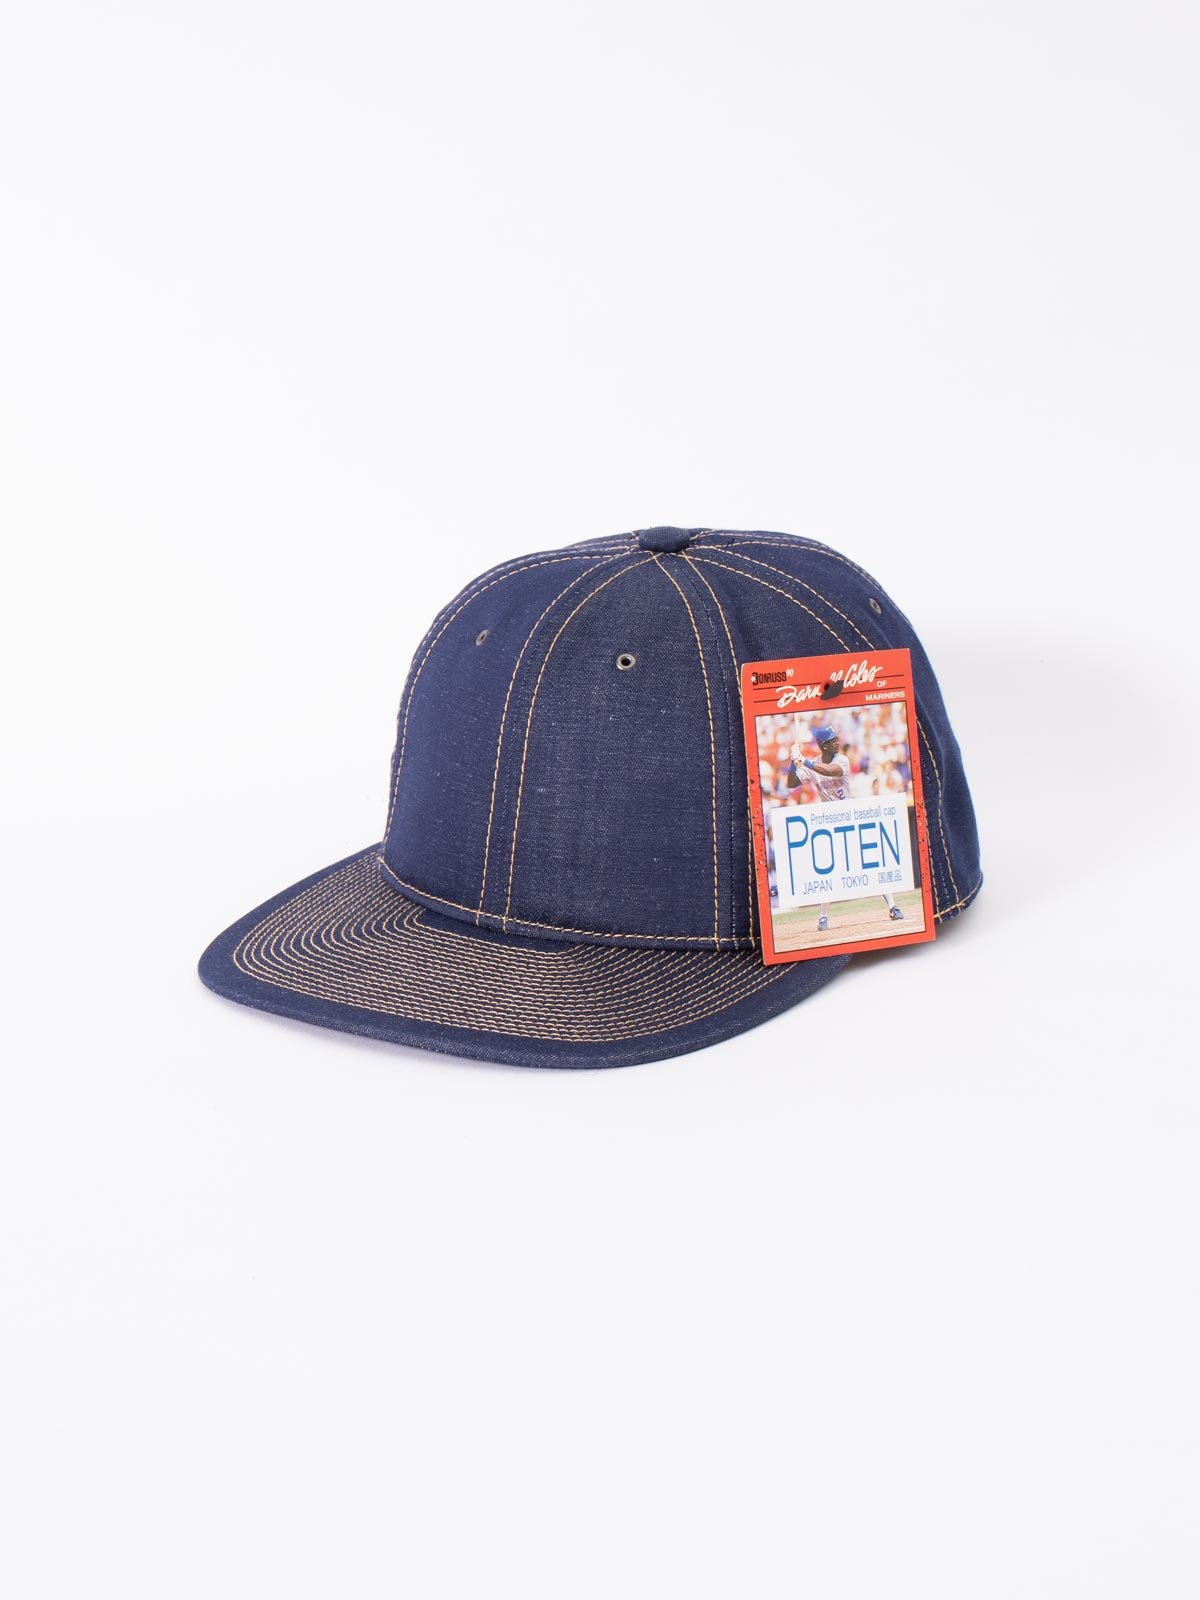 NAVY COTTON LINEN CAP - Image 1